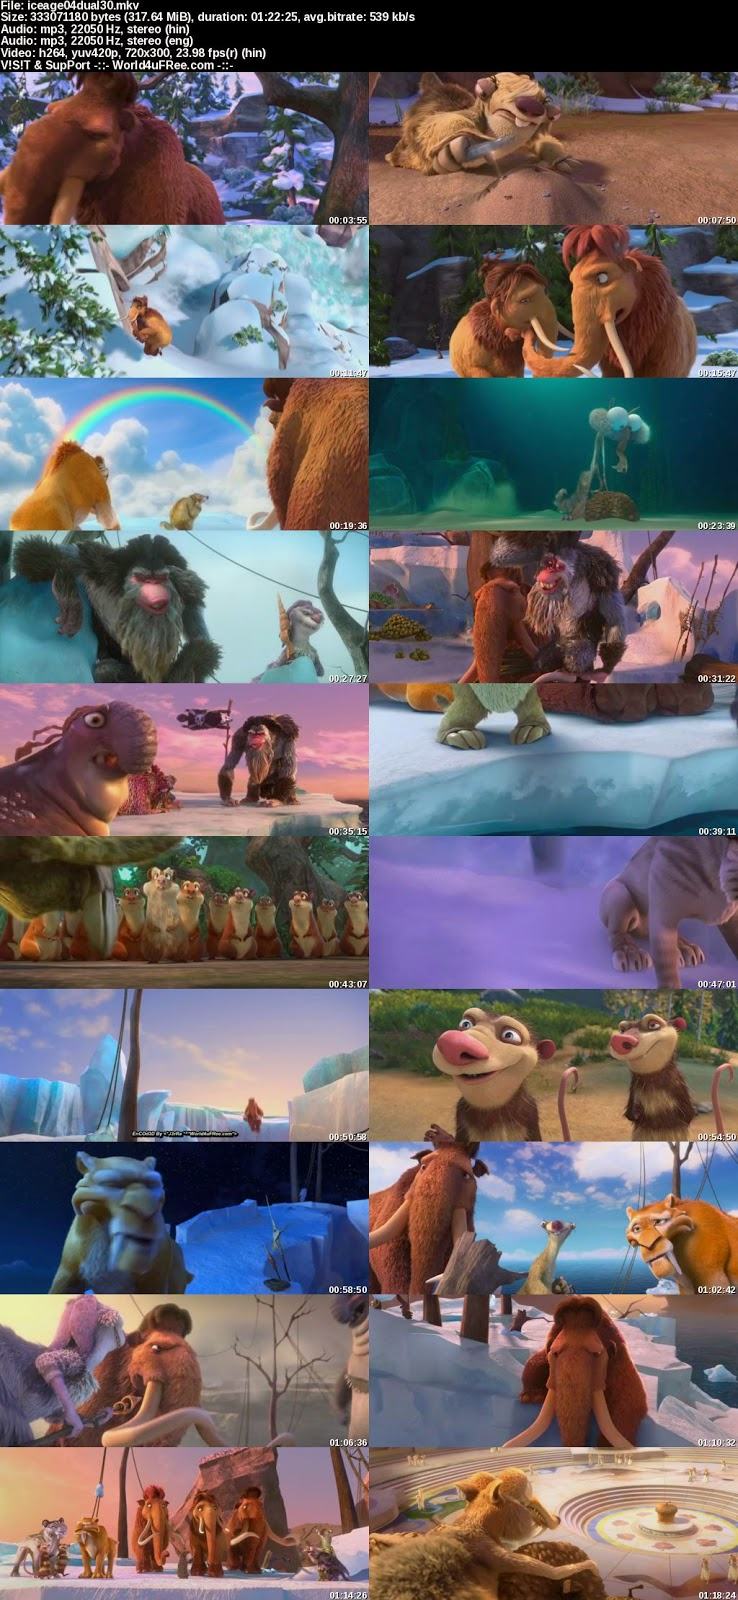 download ice age 4 continental drift full movie in hindi hd files